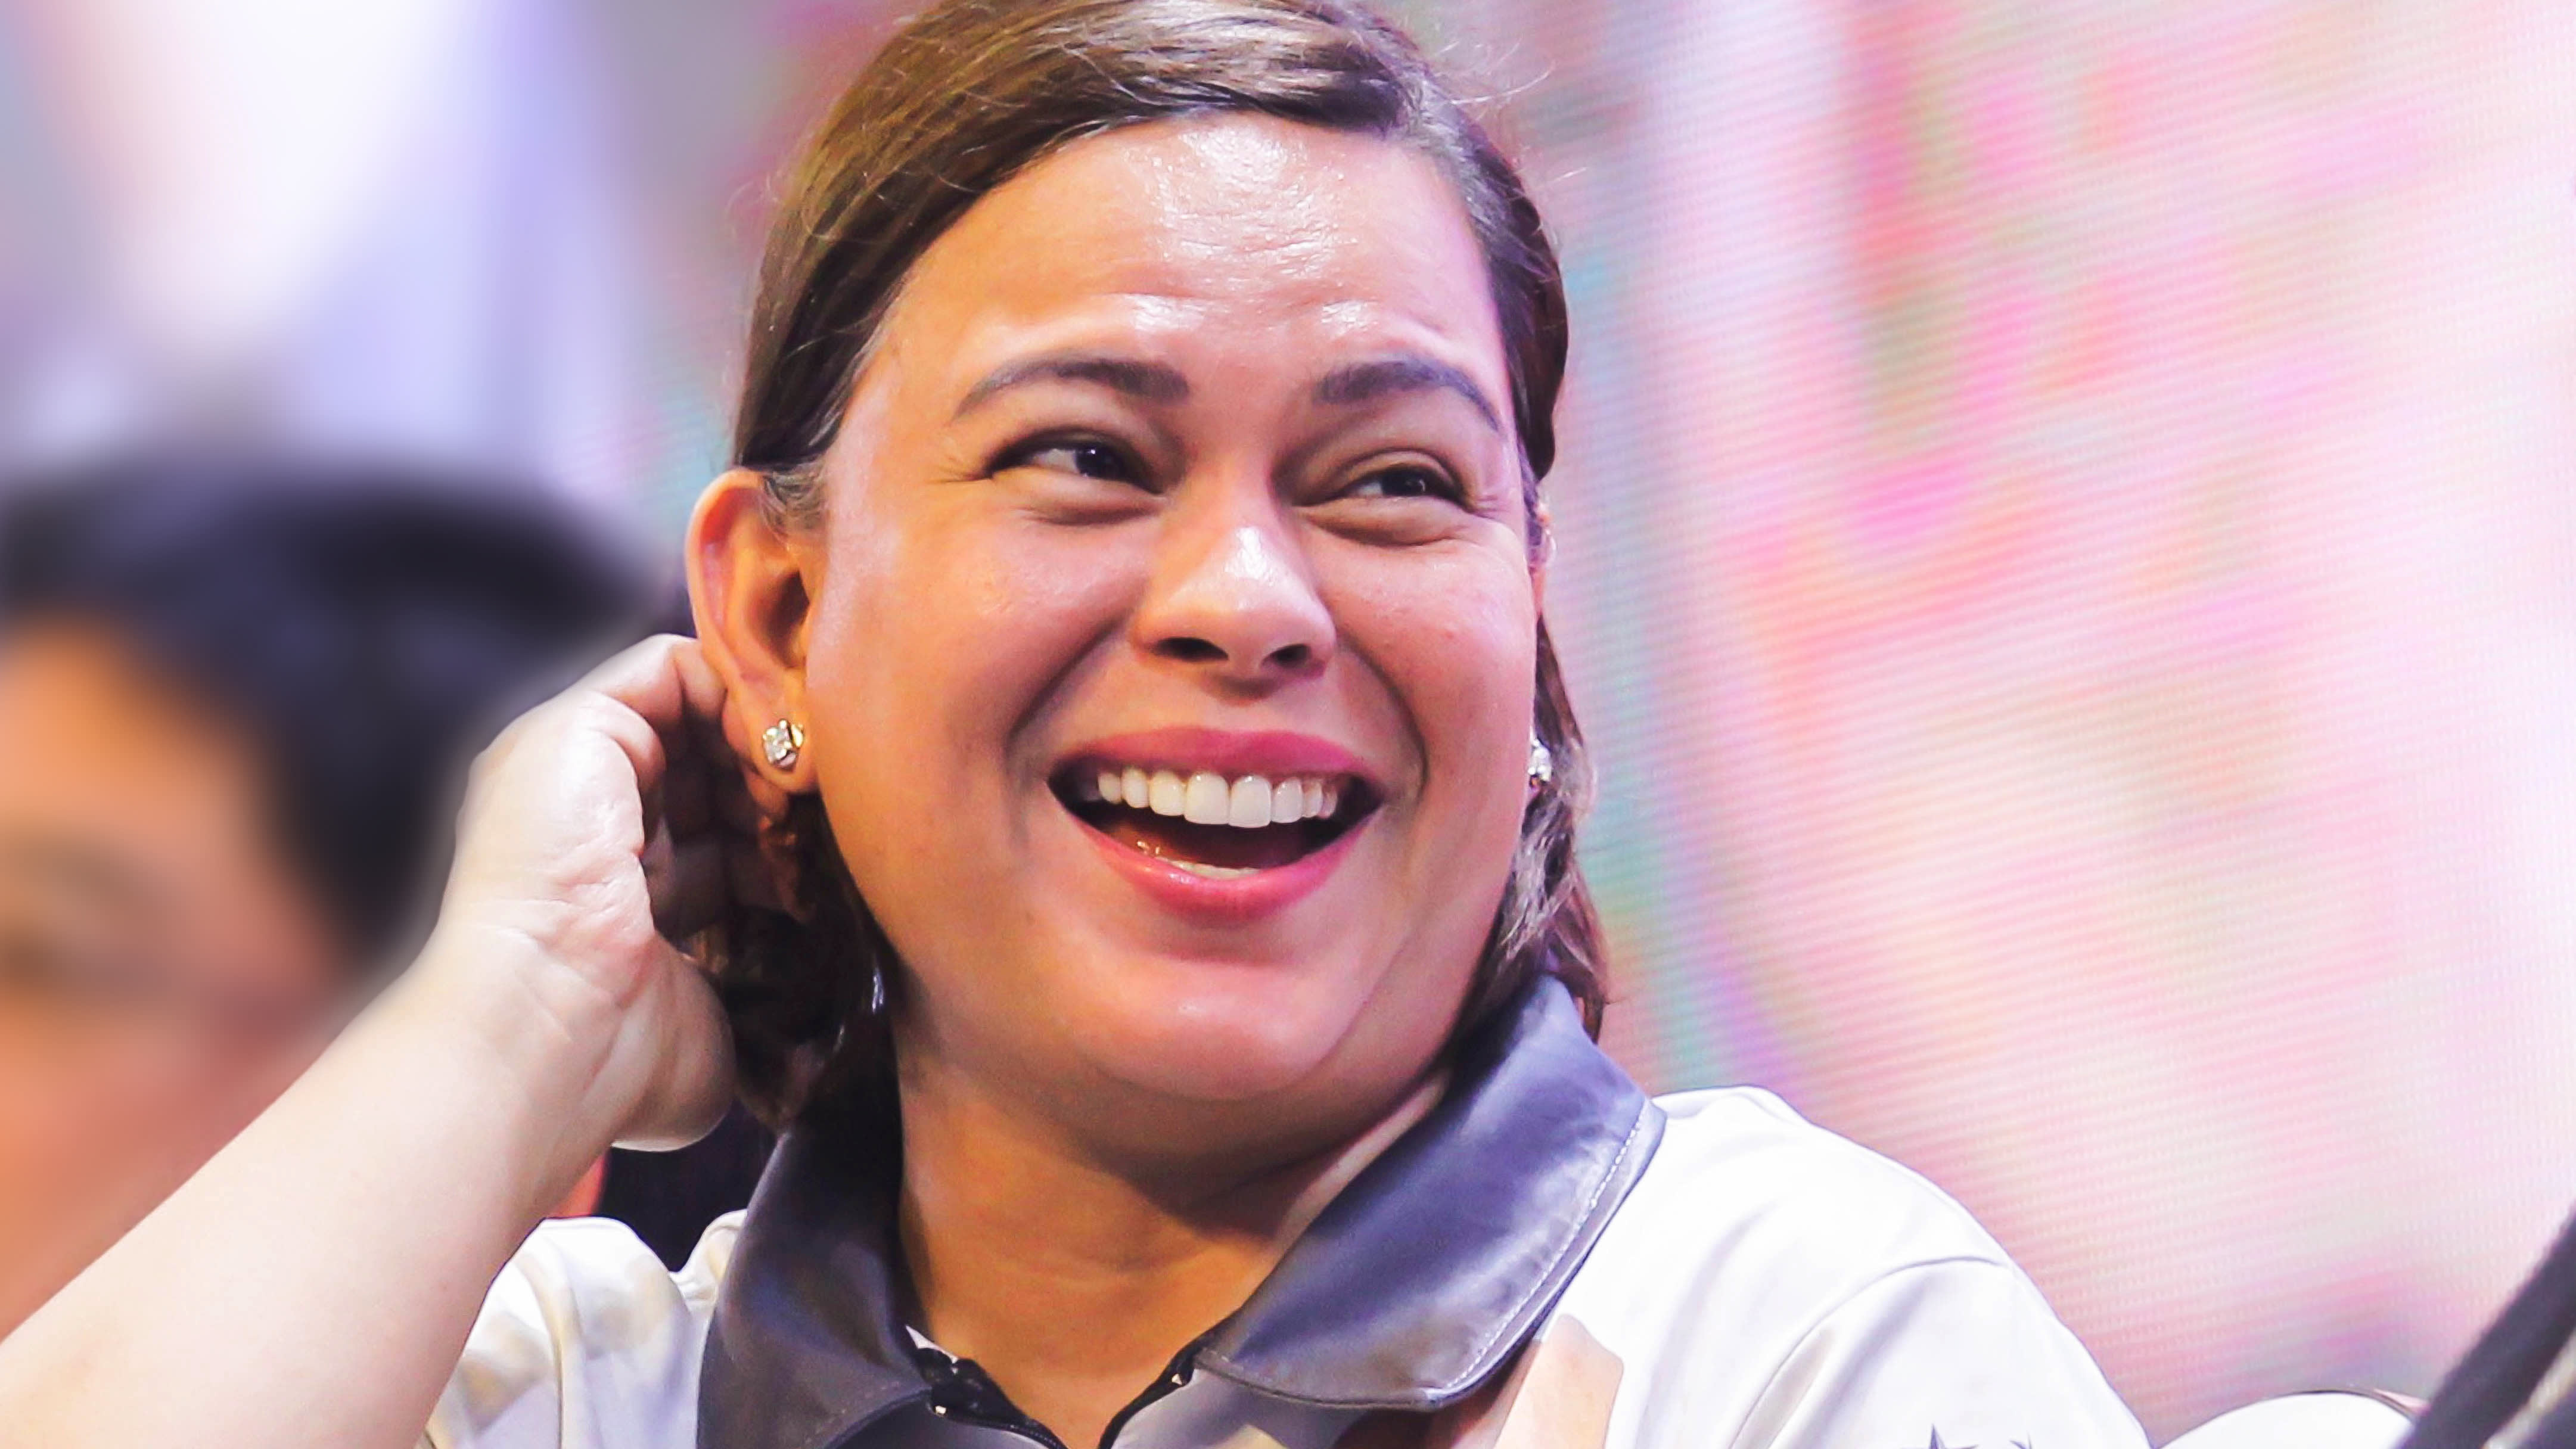 Dutertes daughter rises as potential heir to strongman presidency 4323x2432